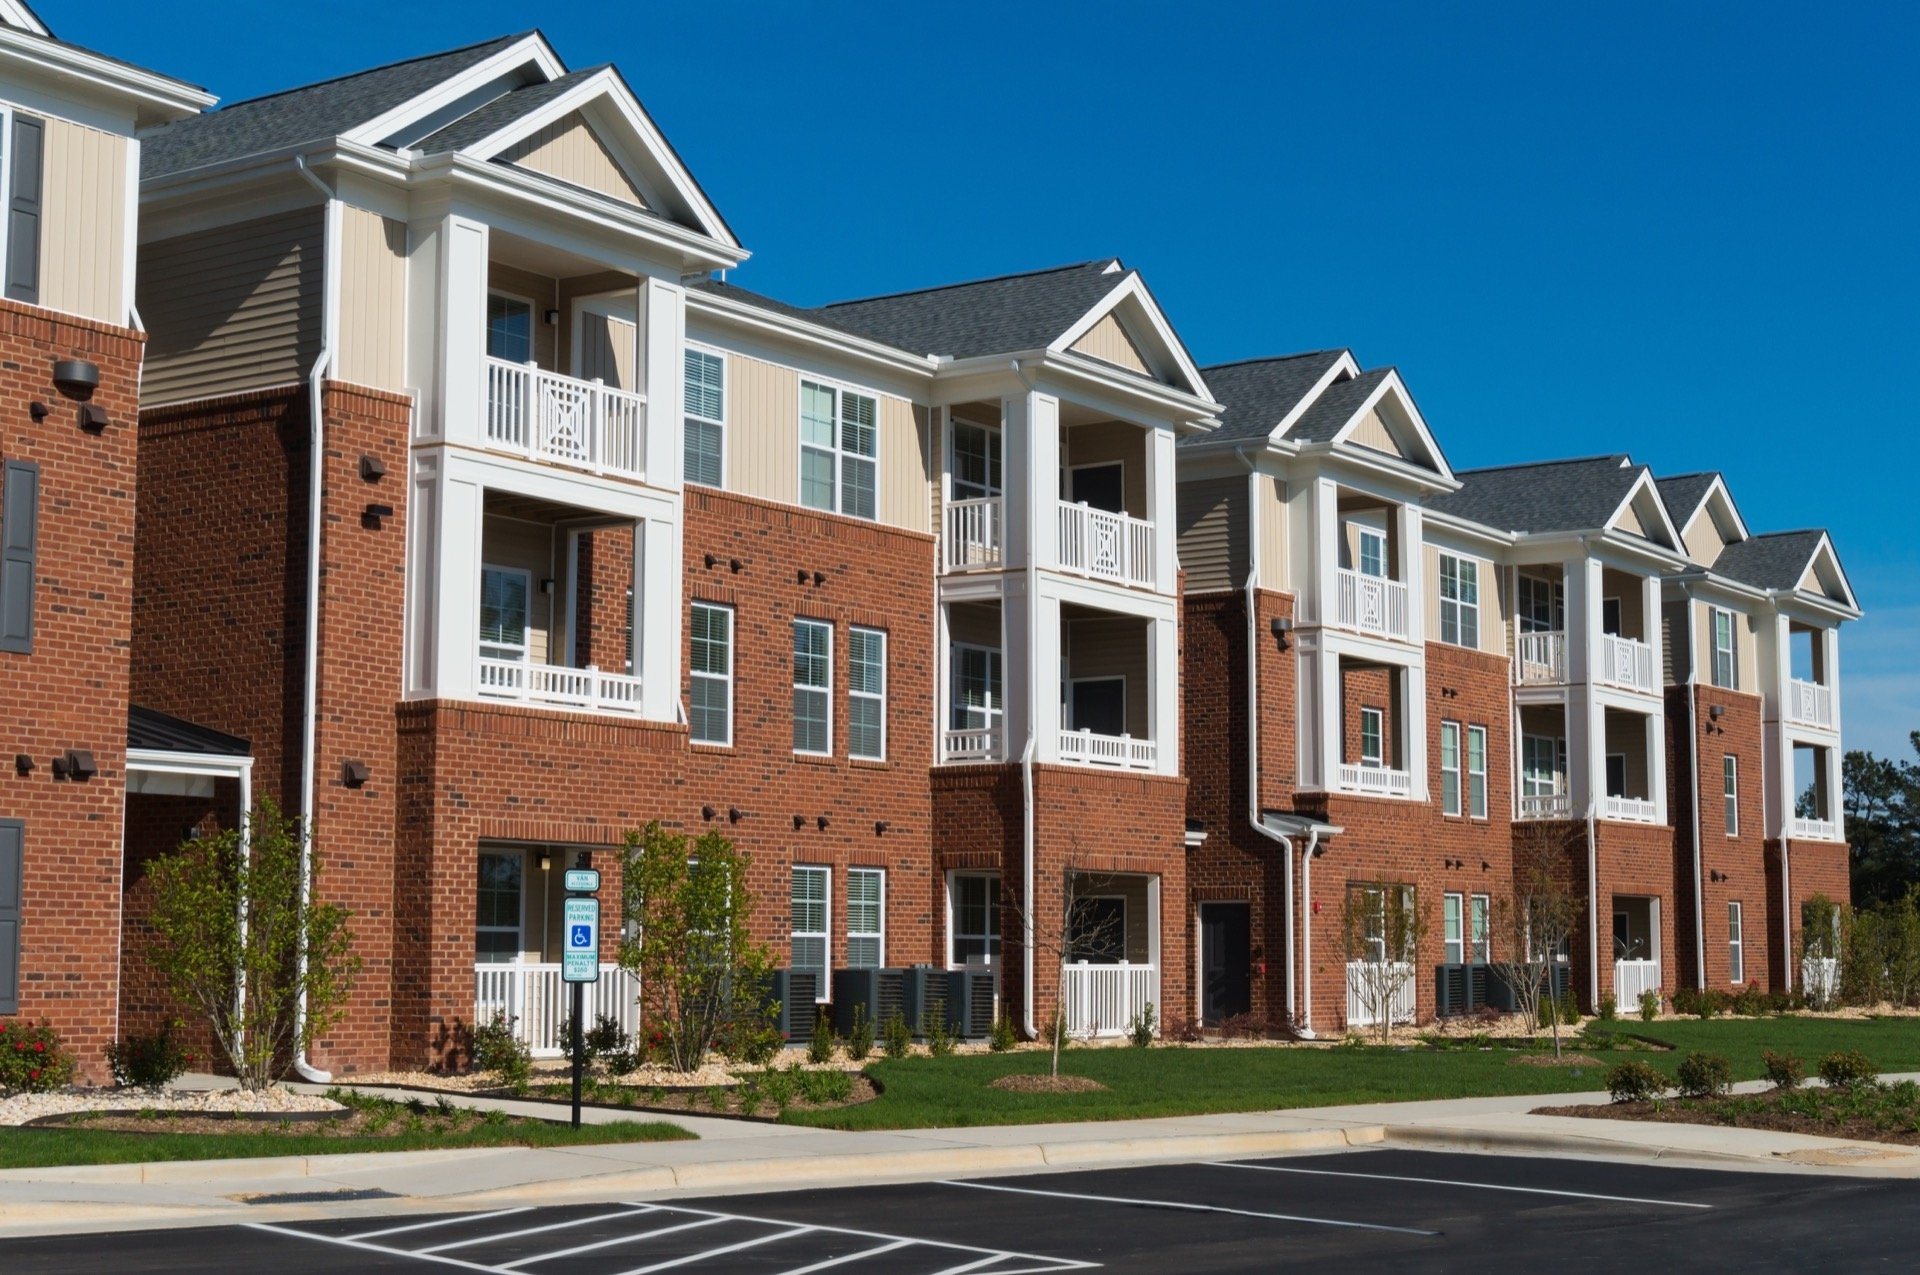 Condos in line in suburban neighborhood